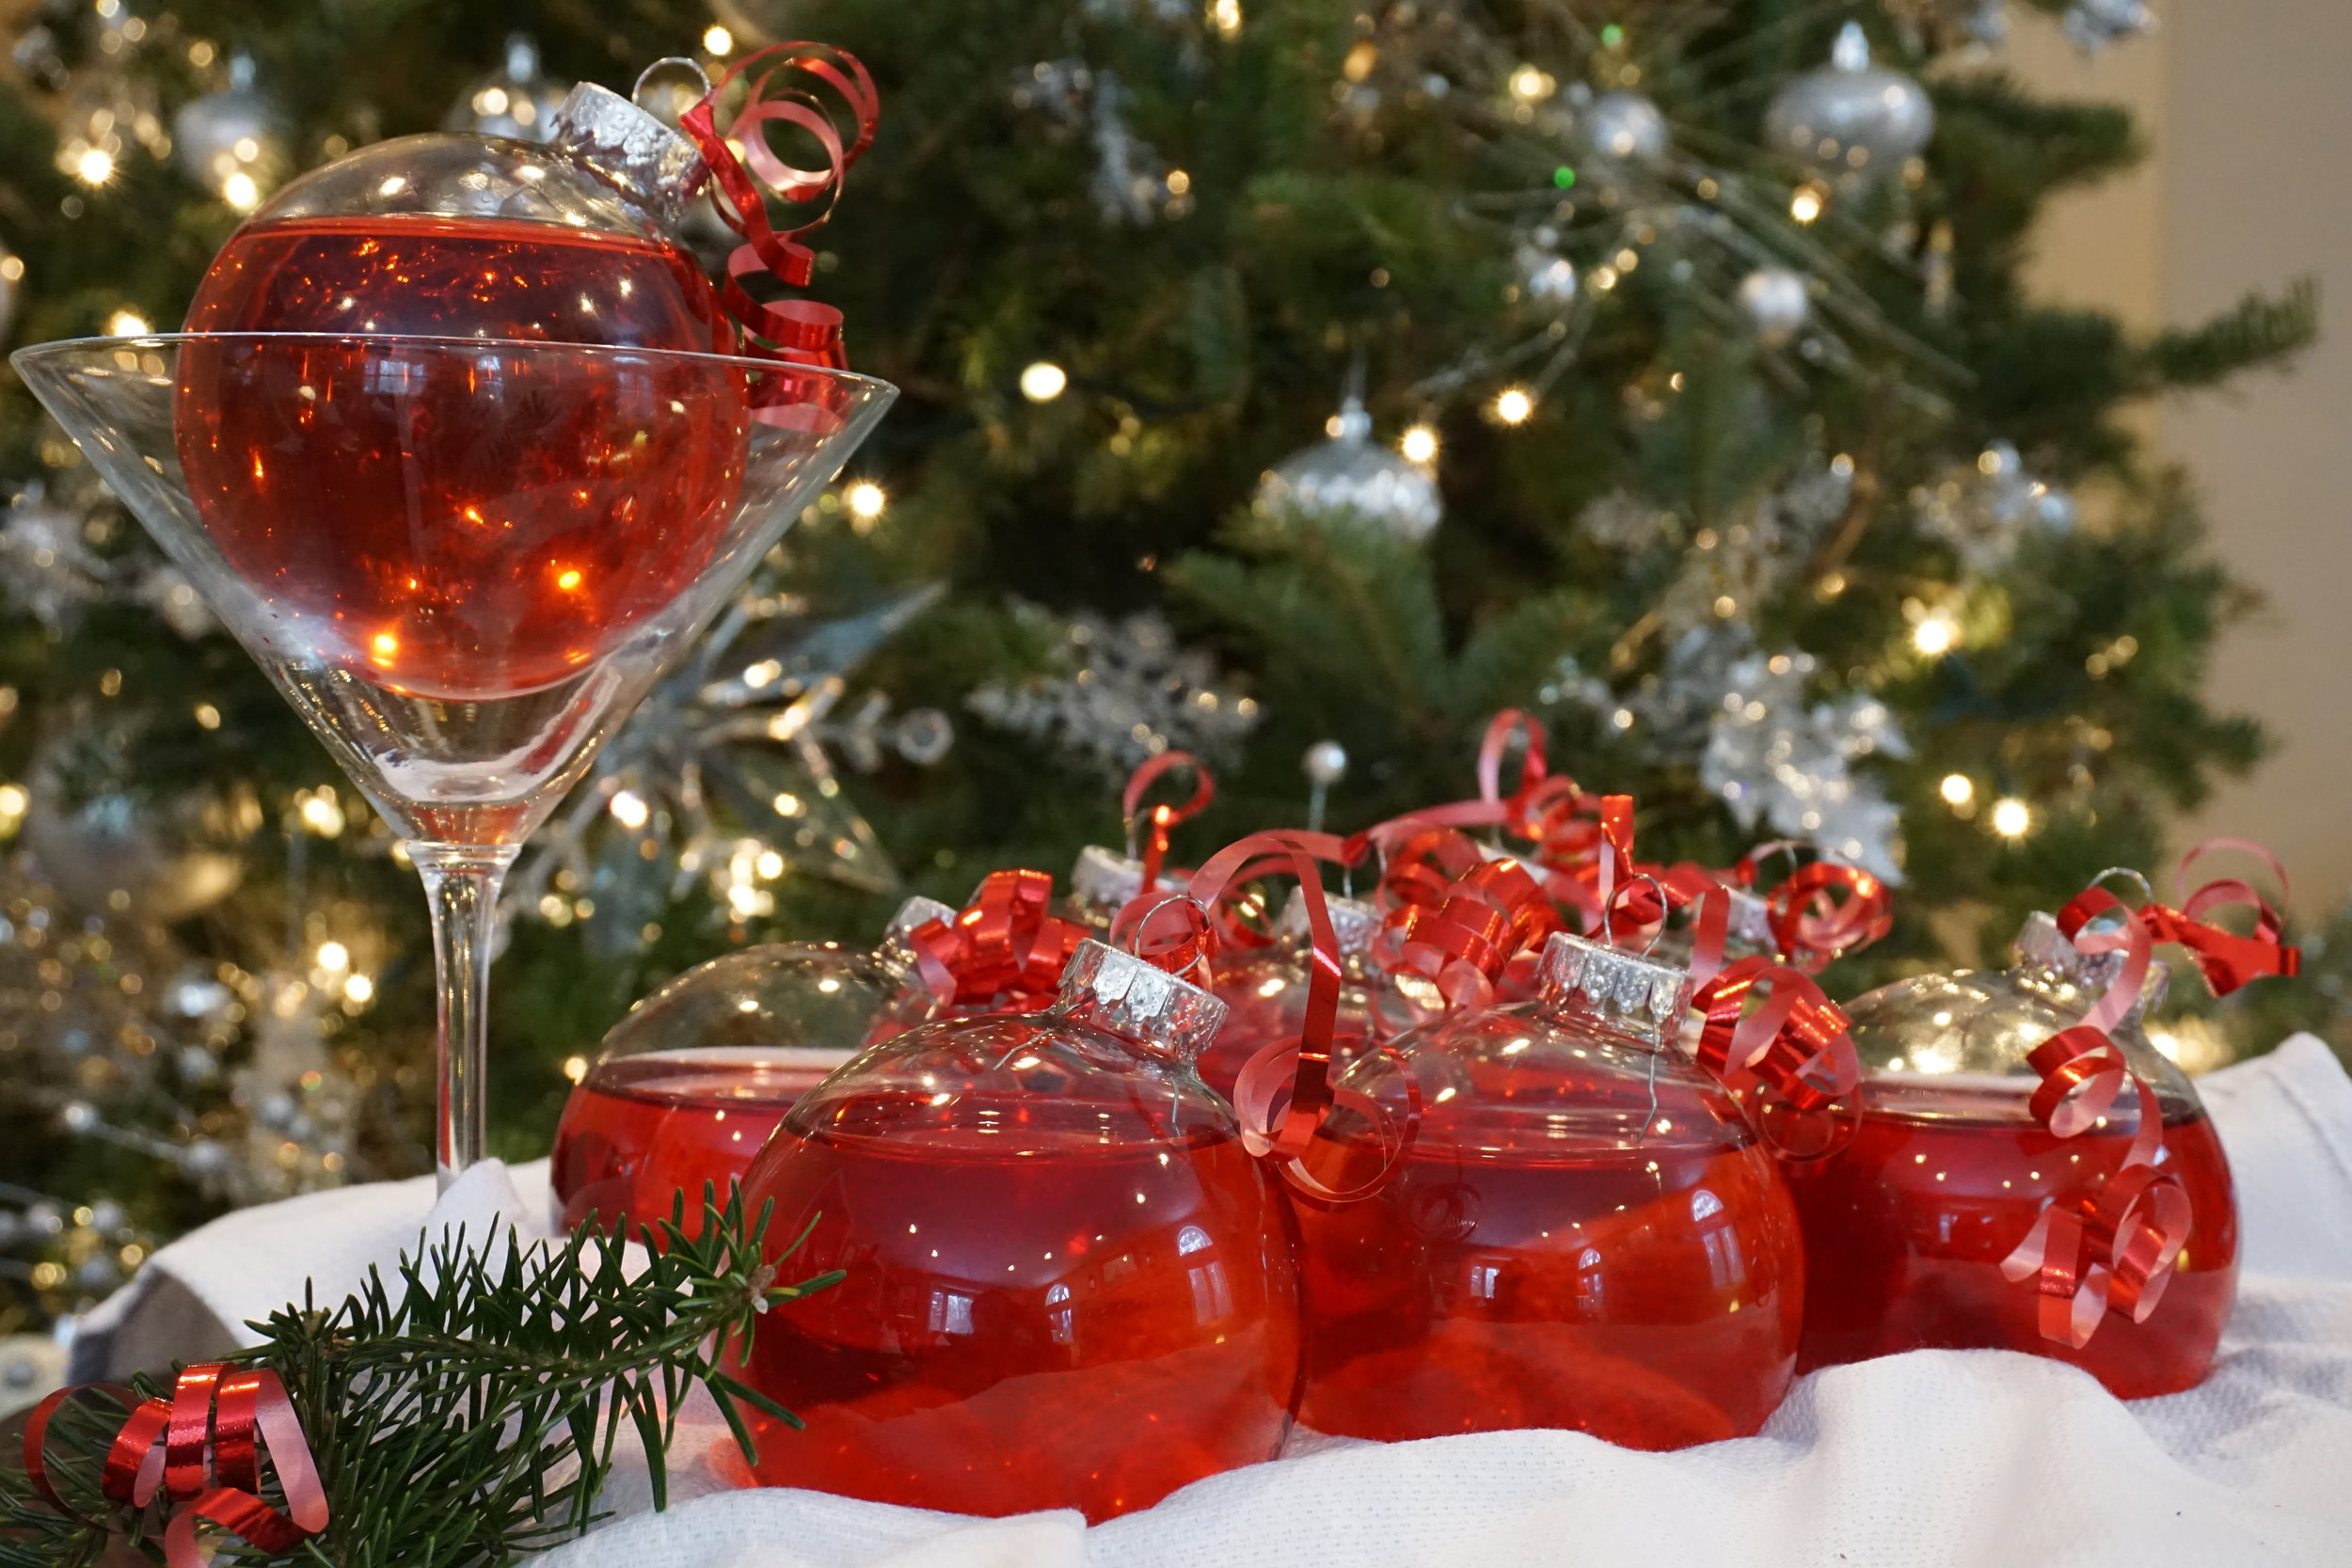 Only use plastic for your guests! Not only is it safer than glass, but they can easily be taken home as gifts.